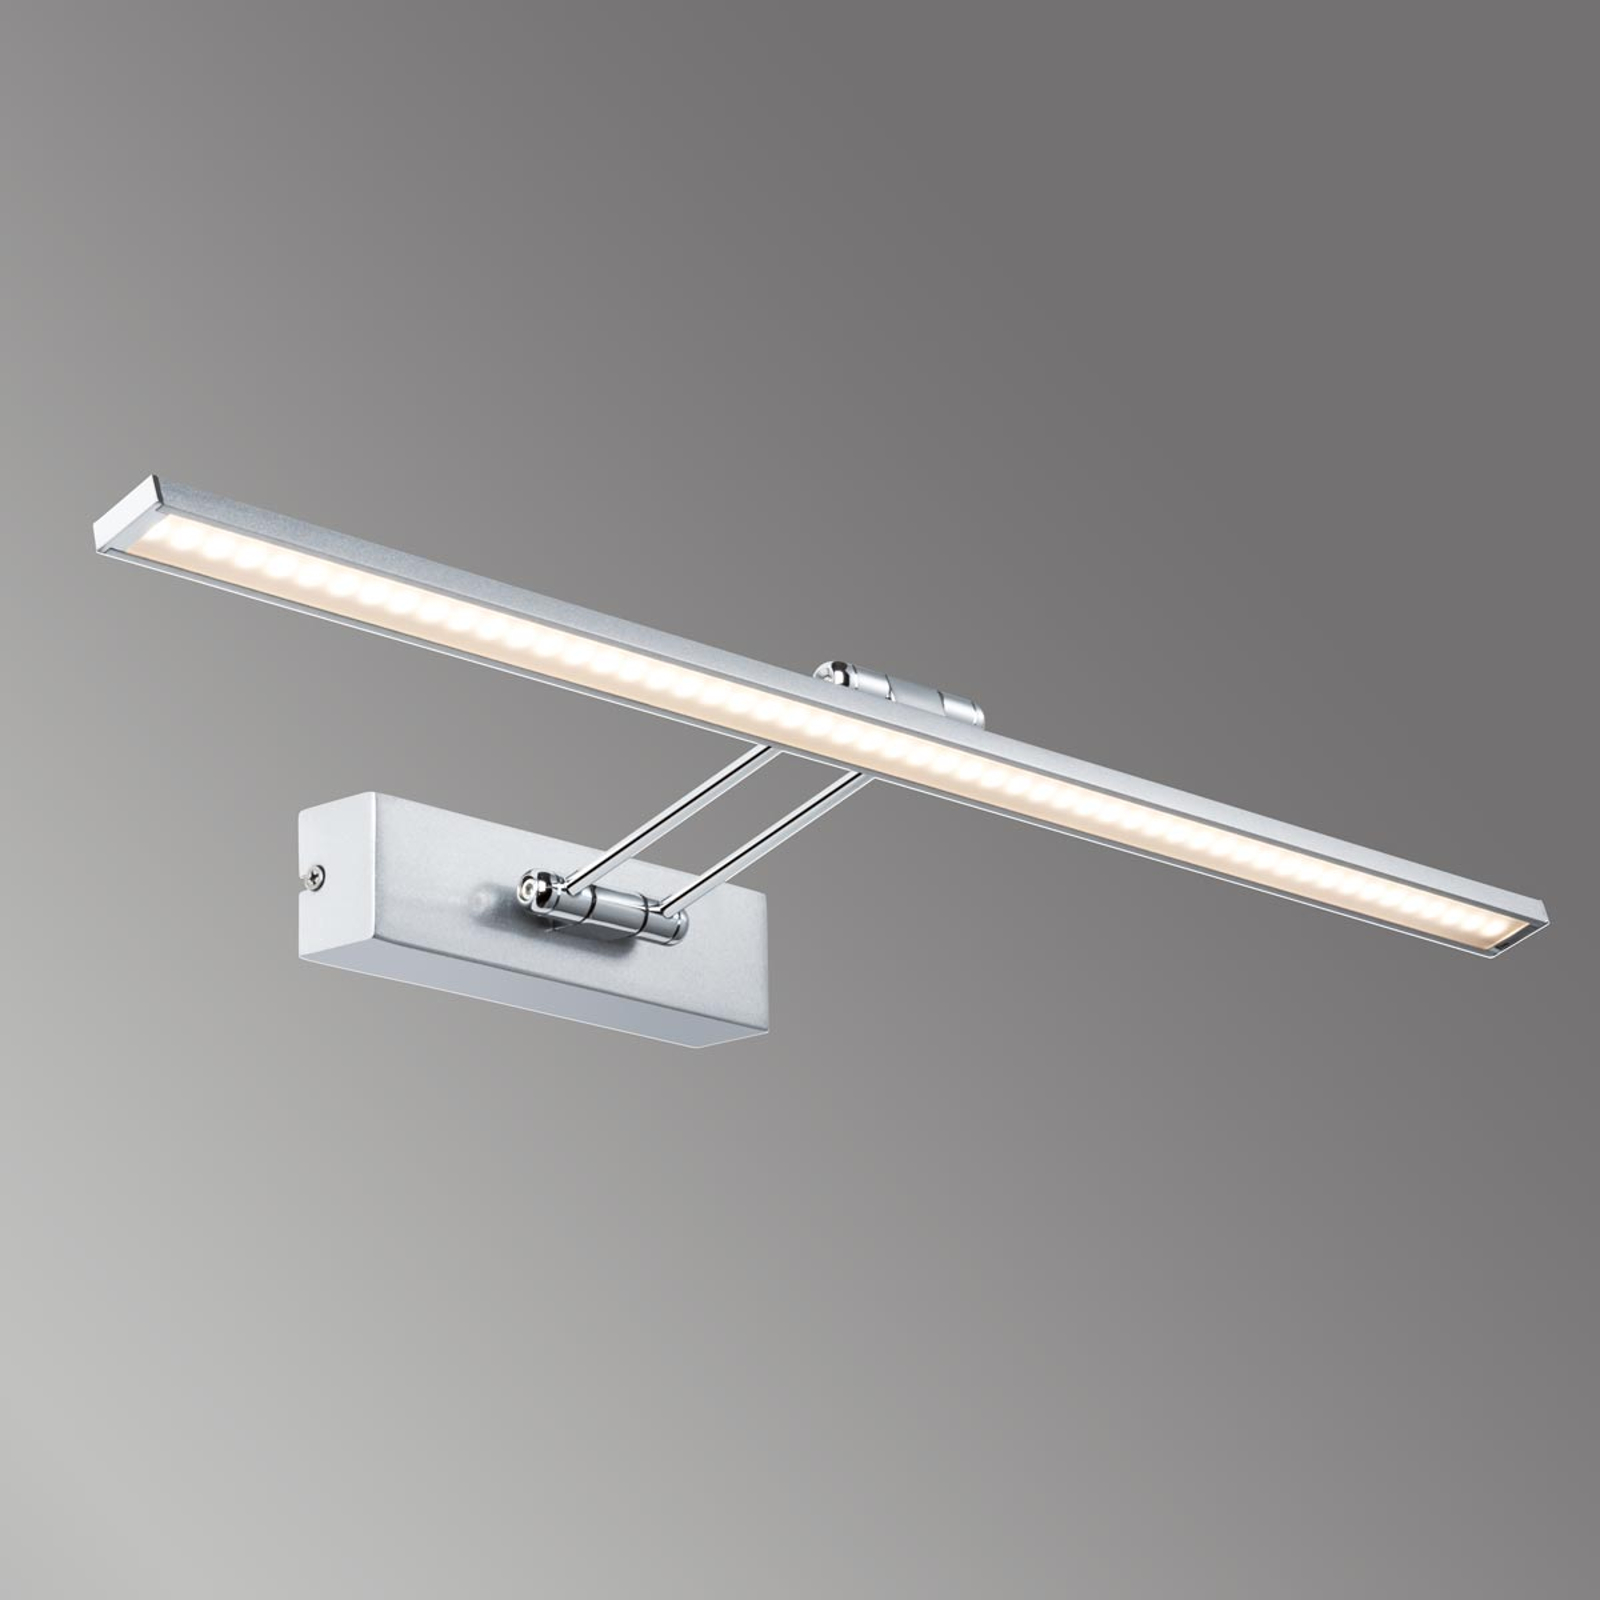 Paulmann Beam Sixty LED-Bilderleuchte in Nickel